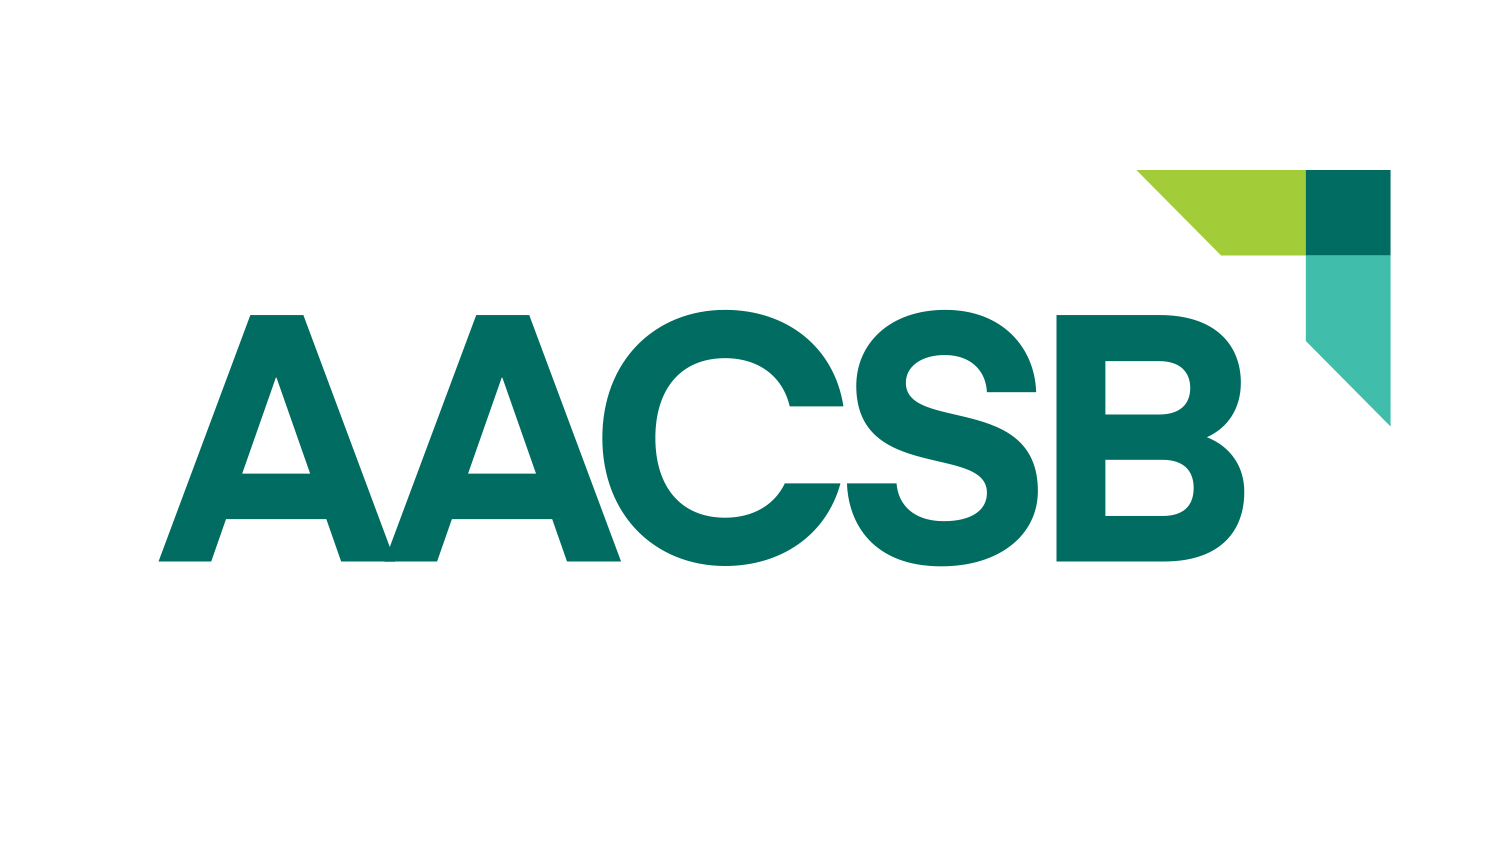 AACSB Corporate Mark